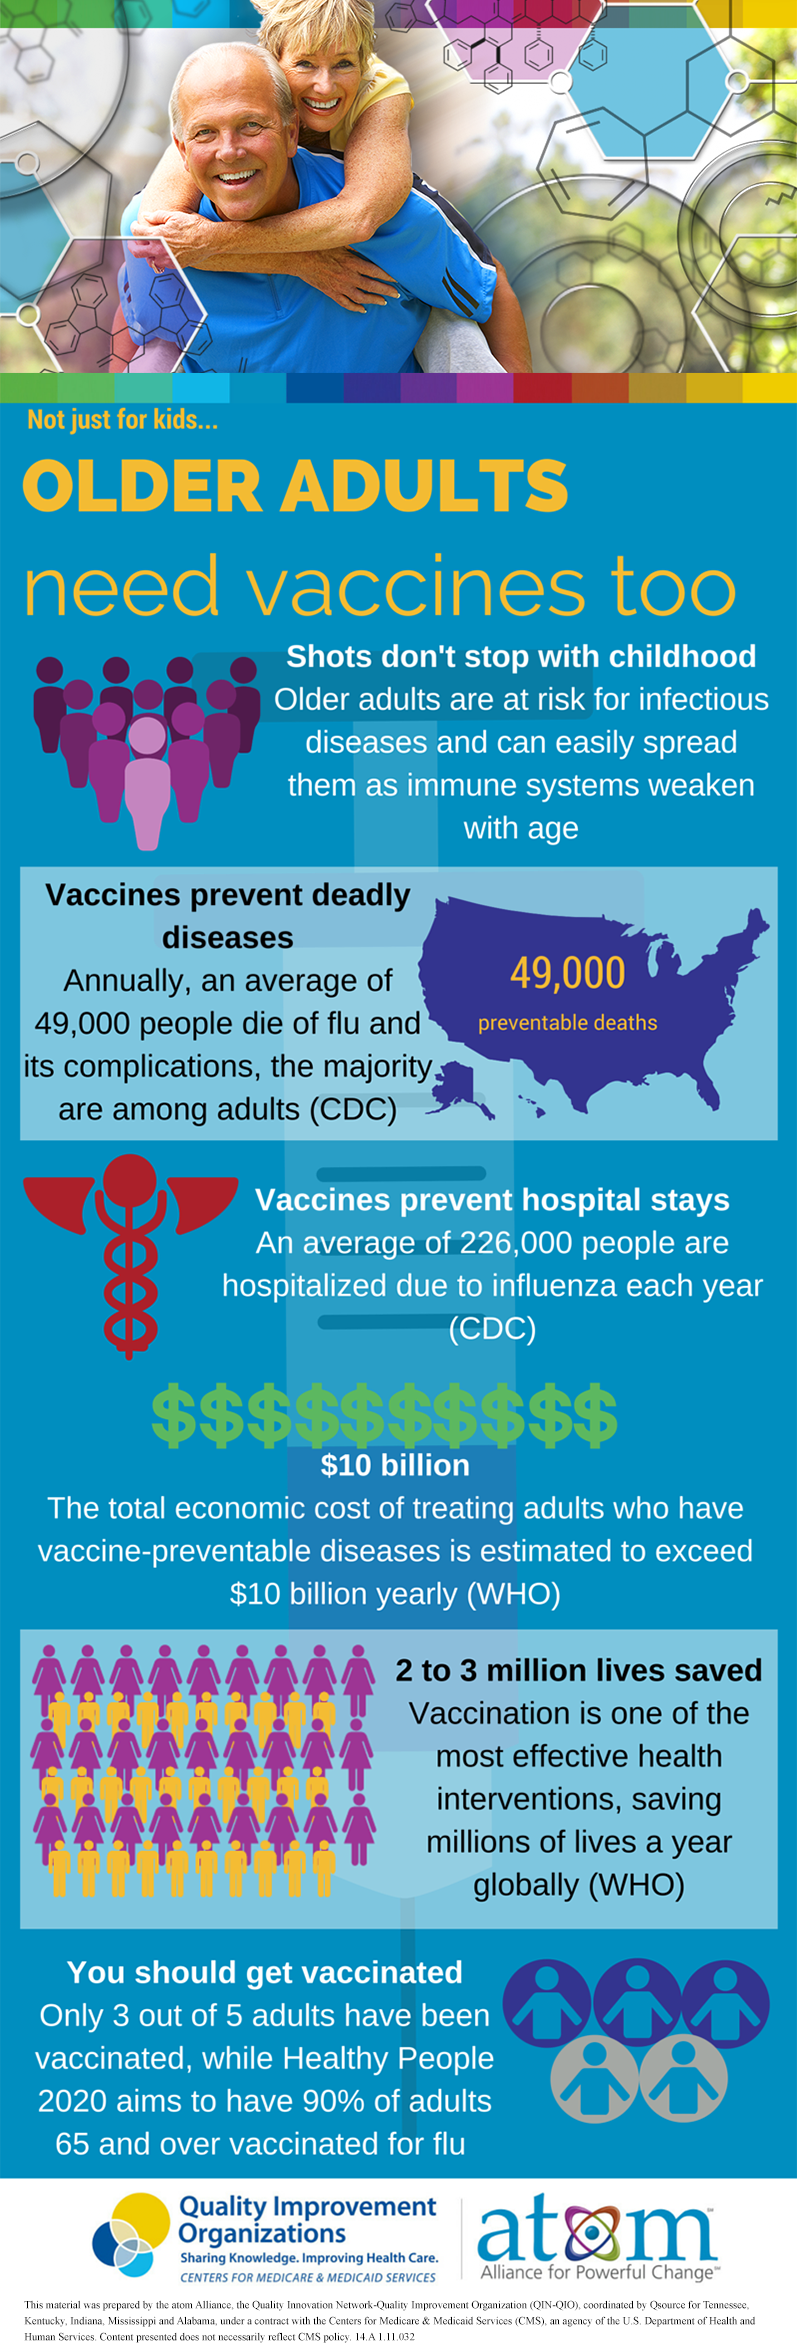 Adult-Vaccine-Infographic-Final